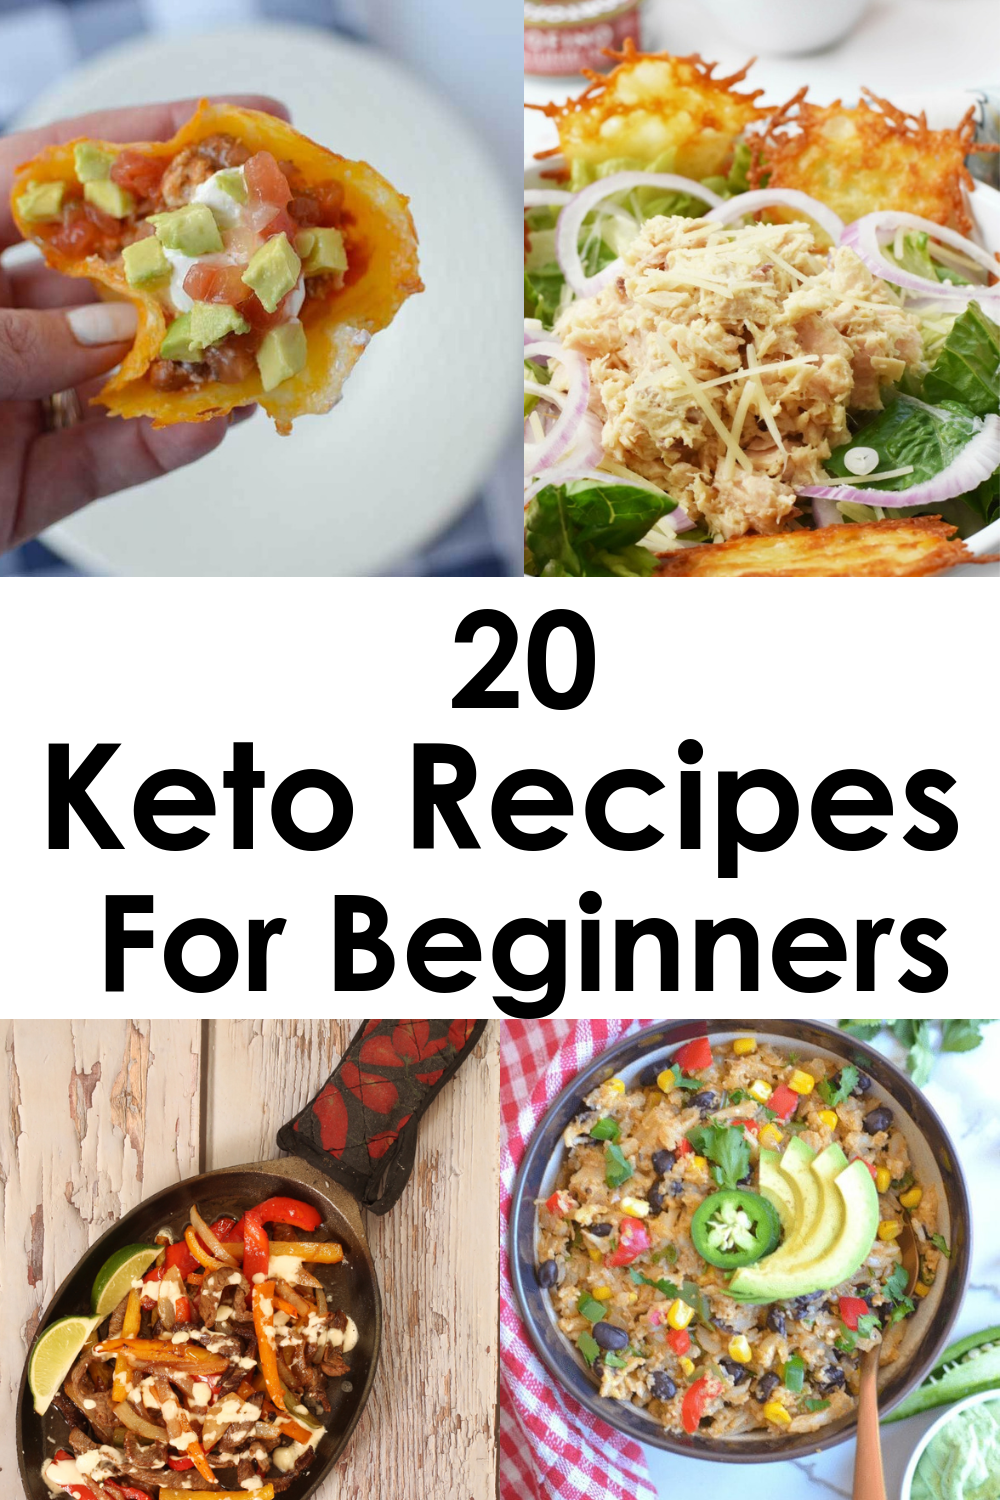 keto recipes for beginners Wondering how to start Keto for beginners? Here is a list easy simple keto for beginners meal plan either as a beginner or just new to Keto. Click to read this post with 20 different keto recipes for beginners/ keto diet for beginners/ keto diet recipes. #keto #lowcarb #ketorecipes#ketodiet #ketogenic #ketogenicdiet#ketogenicrecipes. #keto #ketodiet #ketogenicdiet #ketogenic #ketoshoppinglist